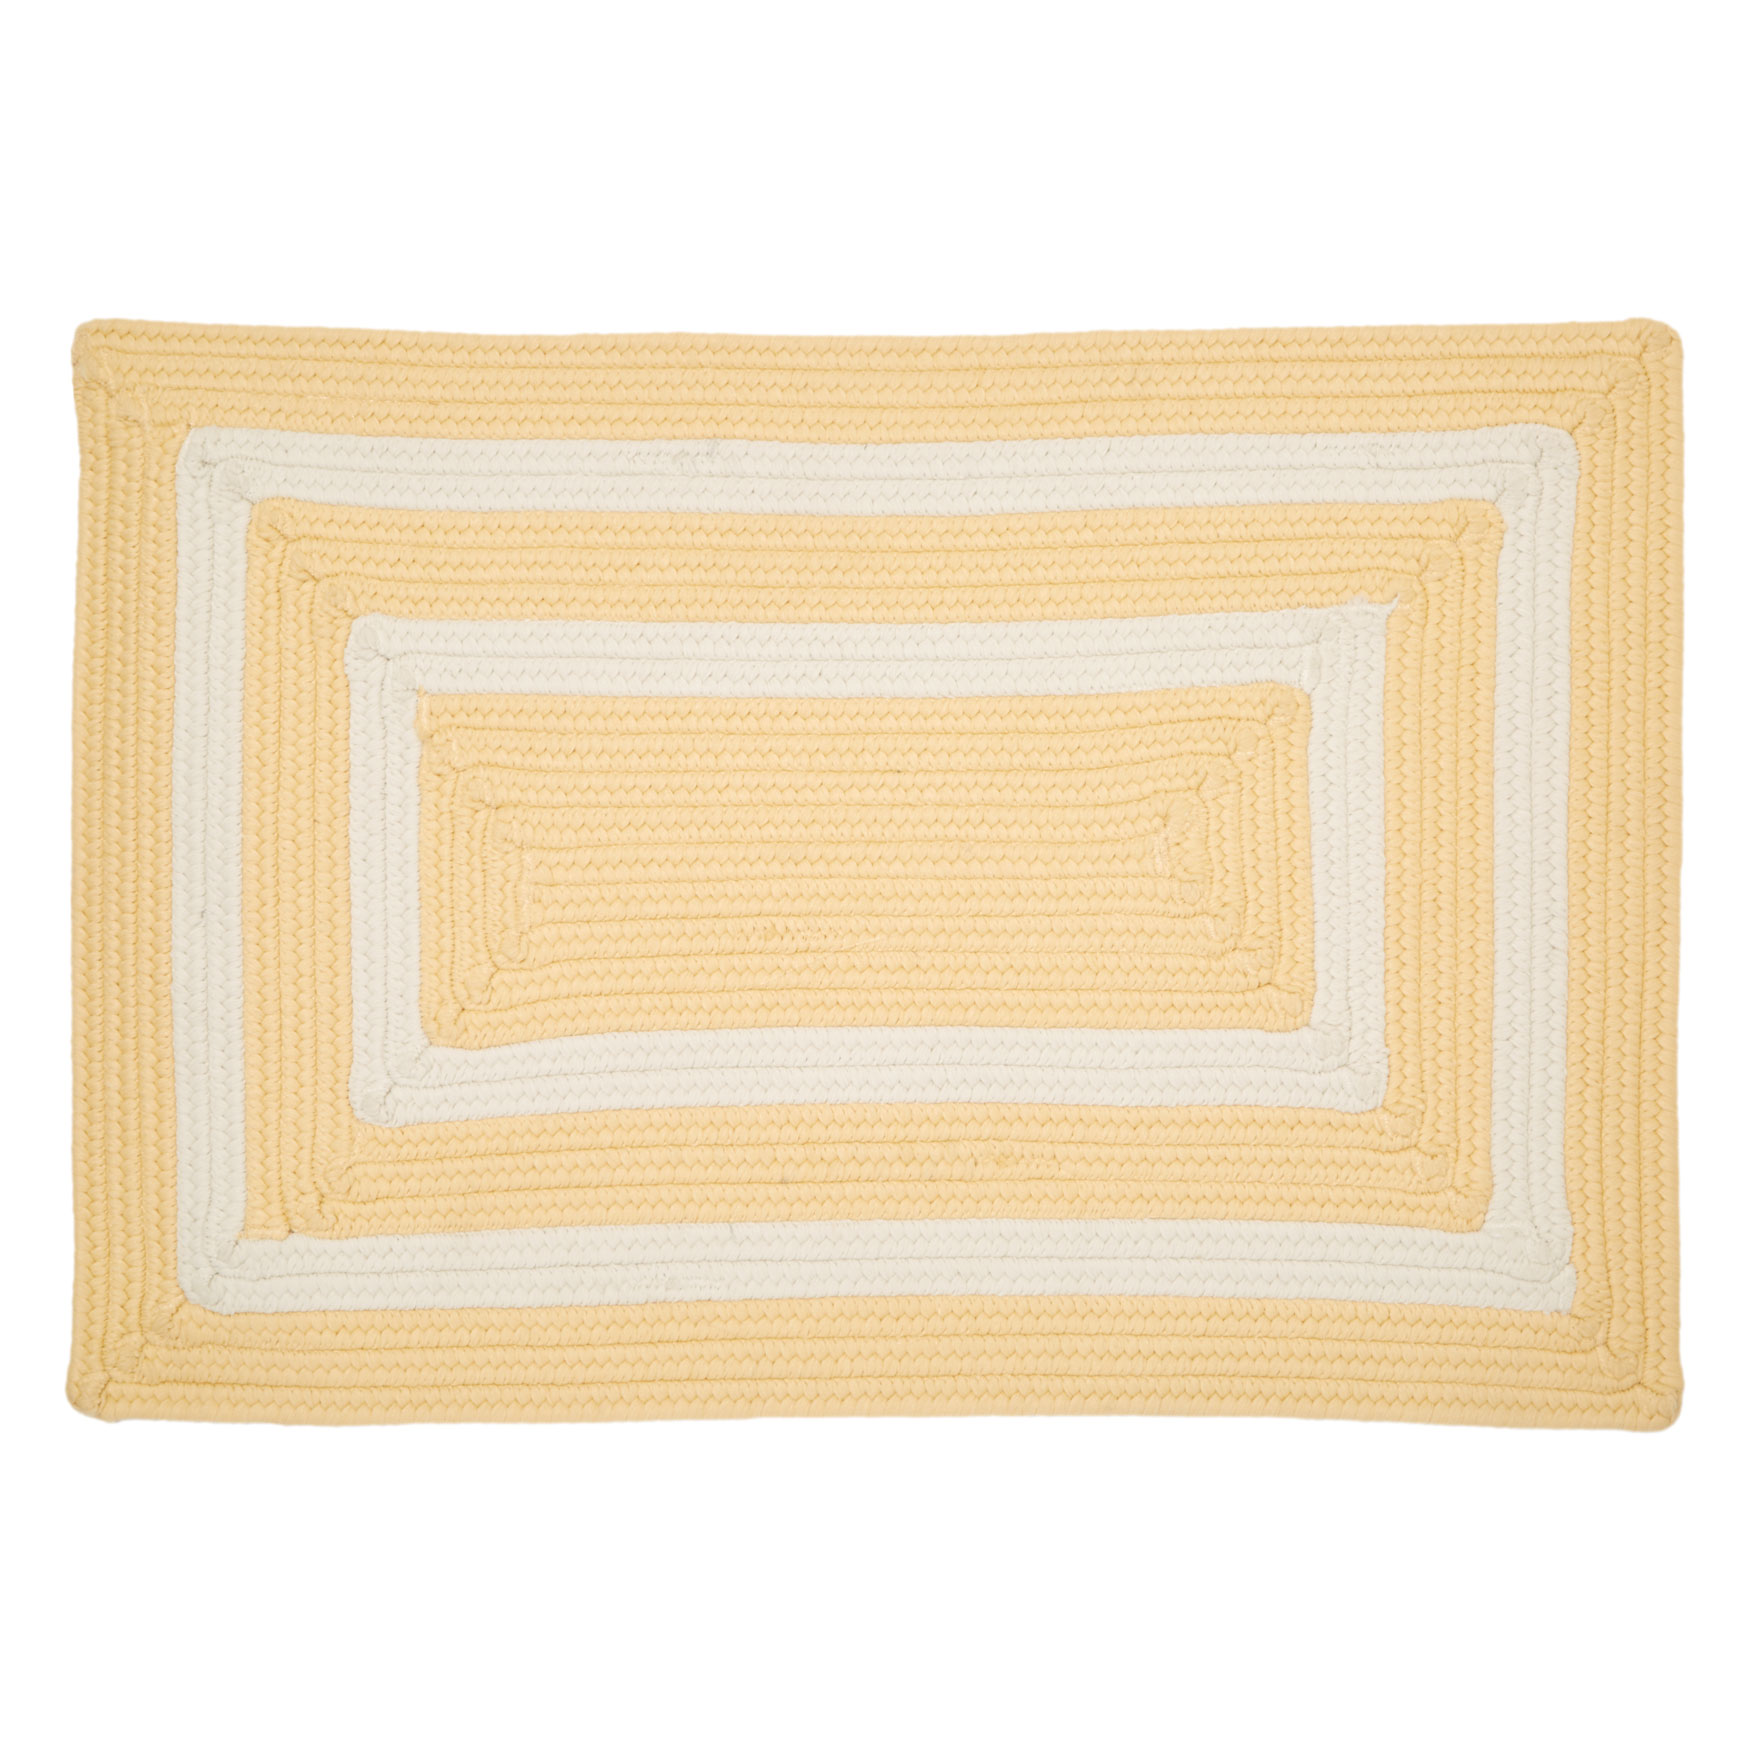 "La Playa Reversible 30""W x 48""L Double-Bordered Mat , YELLOW BORDER"